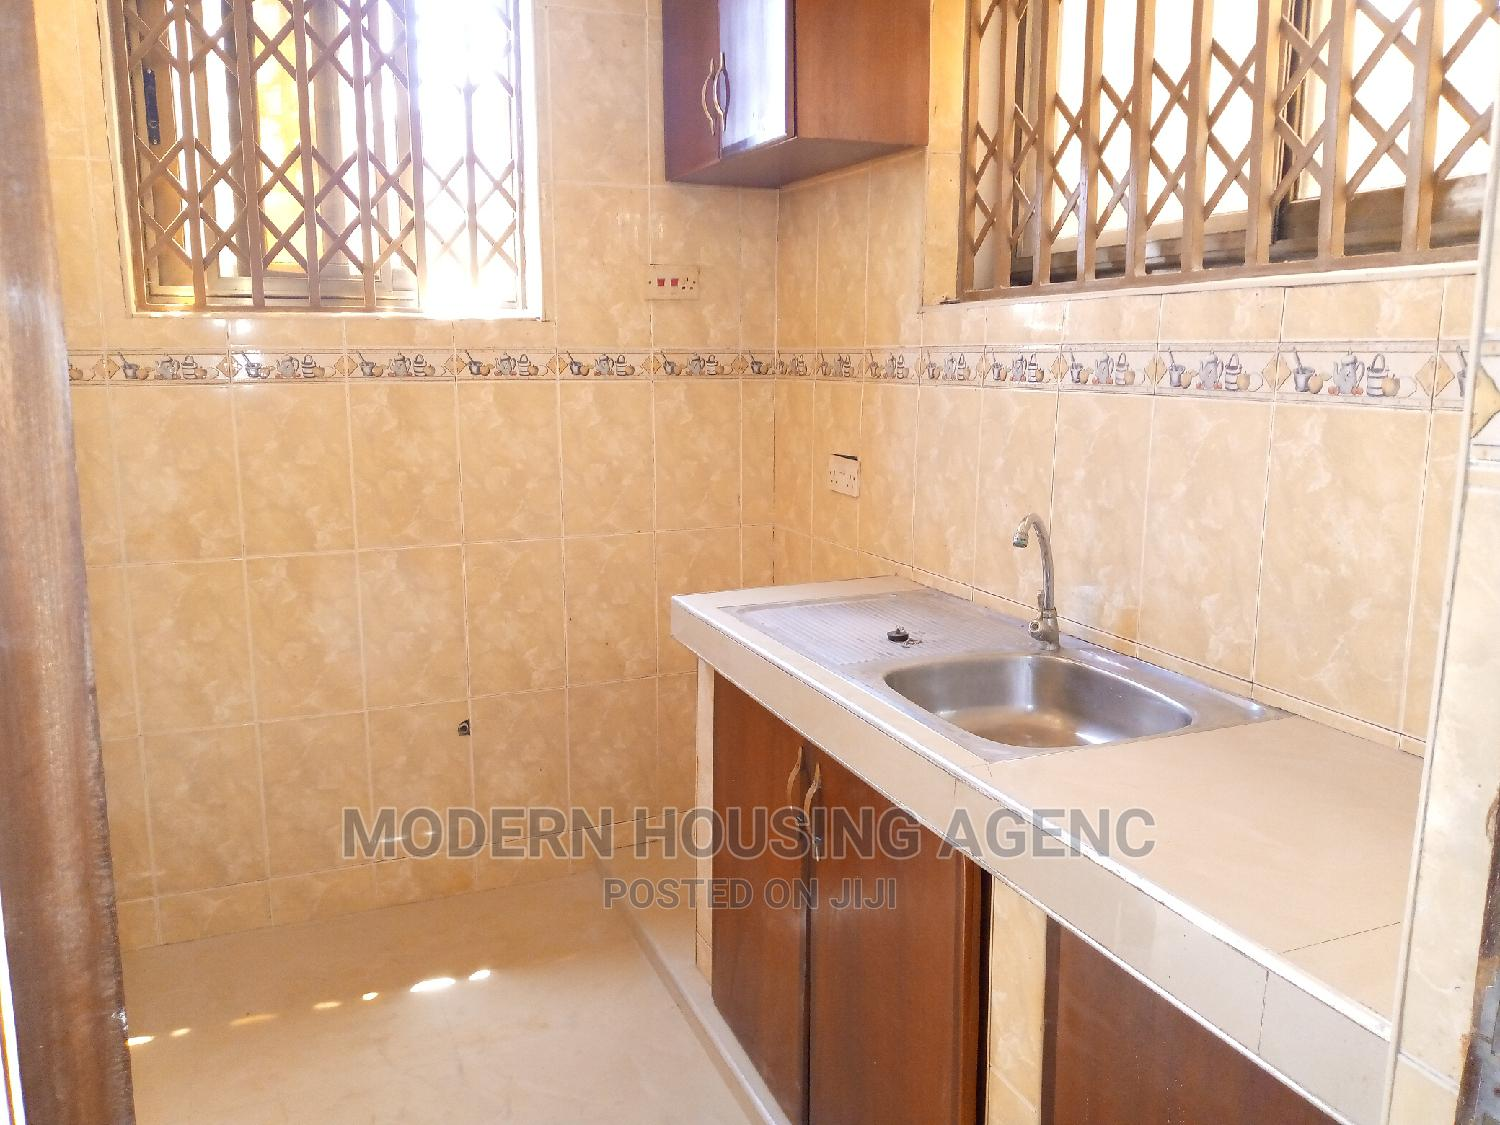 Executive 2 Bedroom Apartment for Rent at Spintex Ecobank | Houses & Apartments For Rent for sale in Spintex, Greater Accra, Ghana